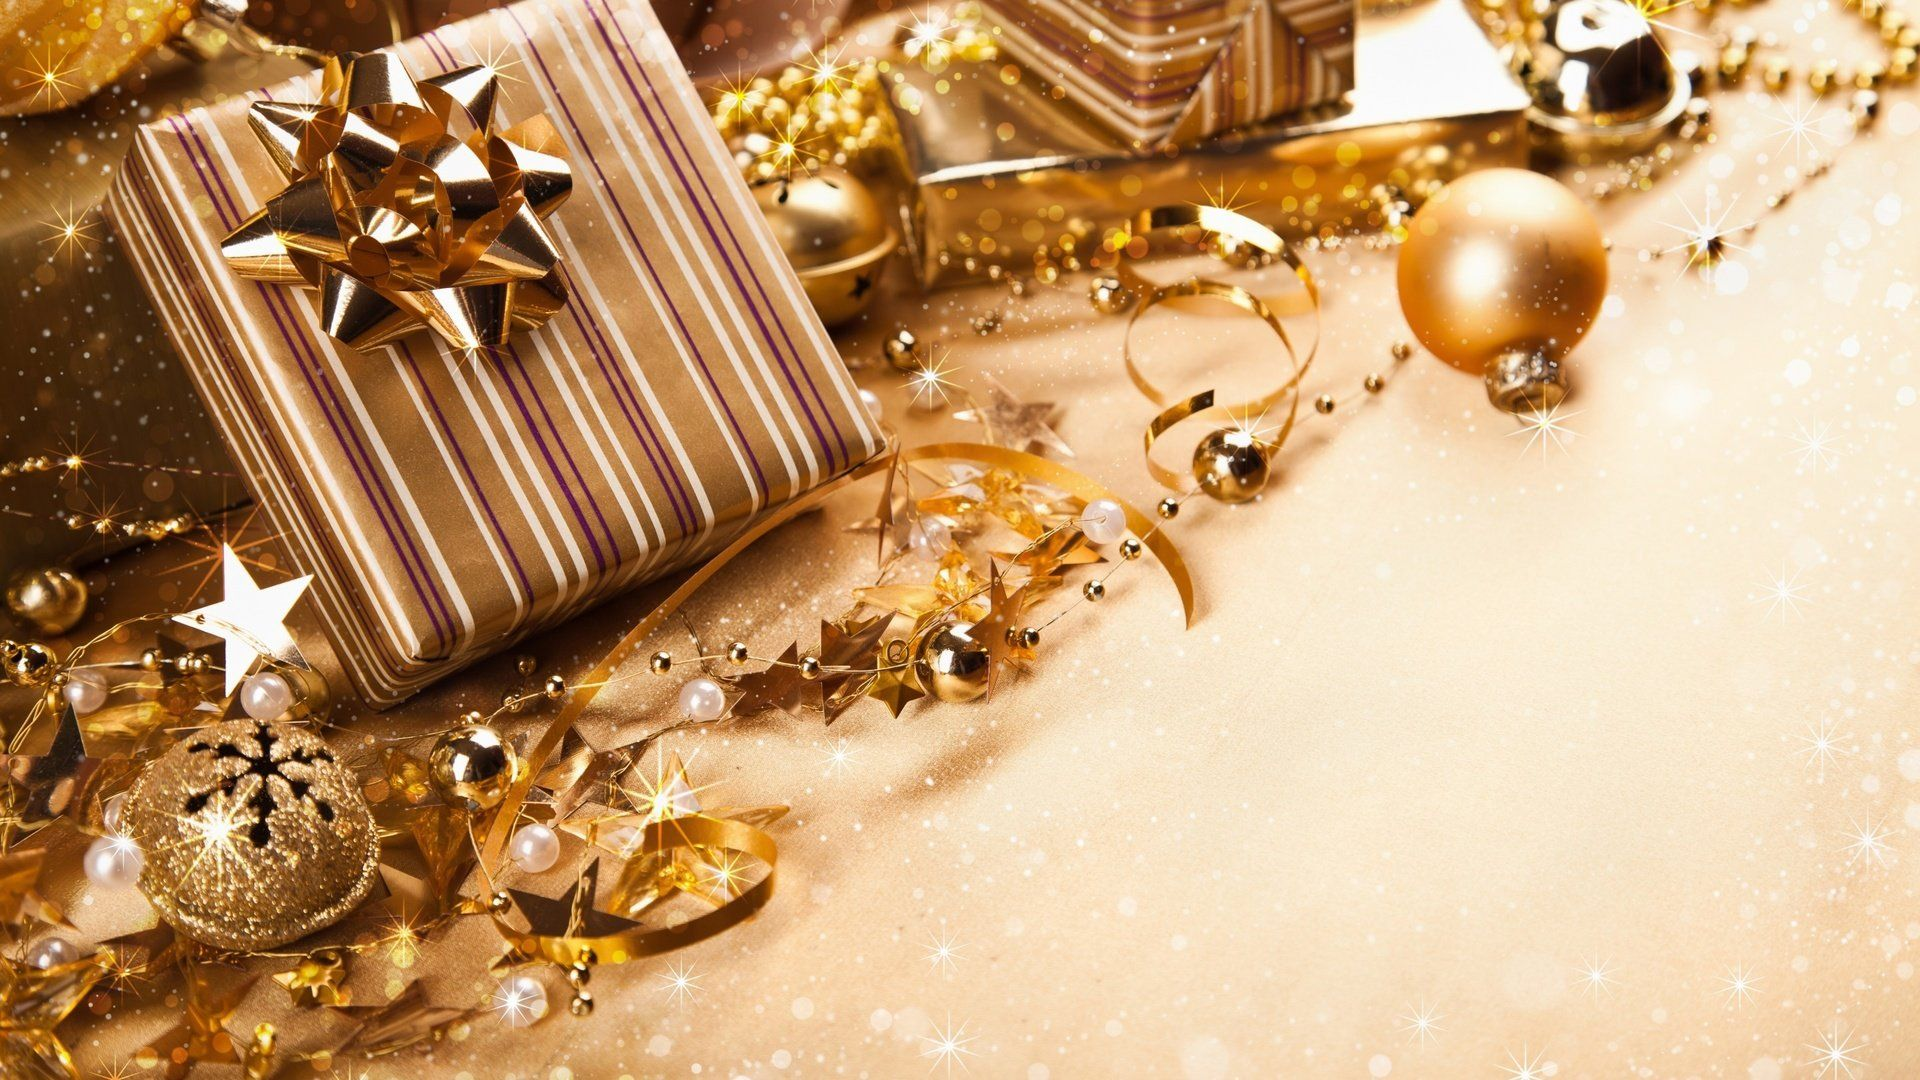 New Year Gifts download wallpaper image